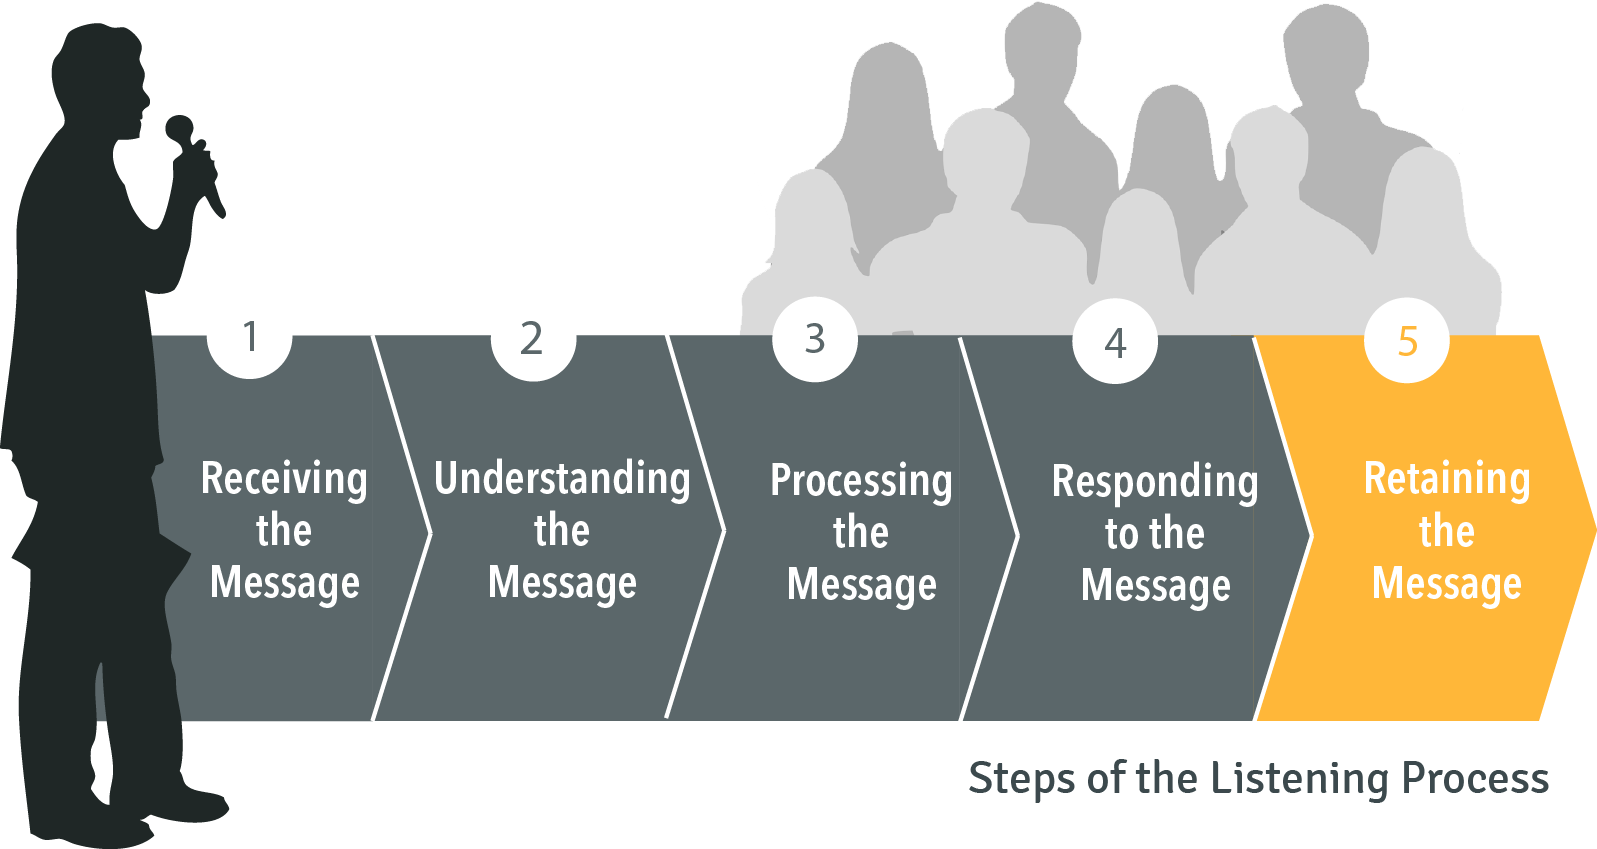 Steps of the listening process: 5. Retaining the message